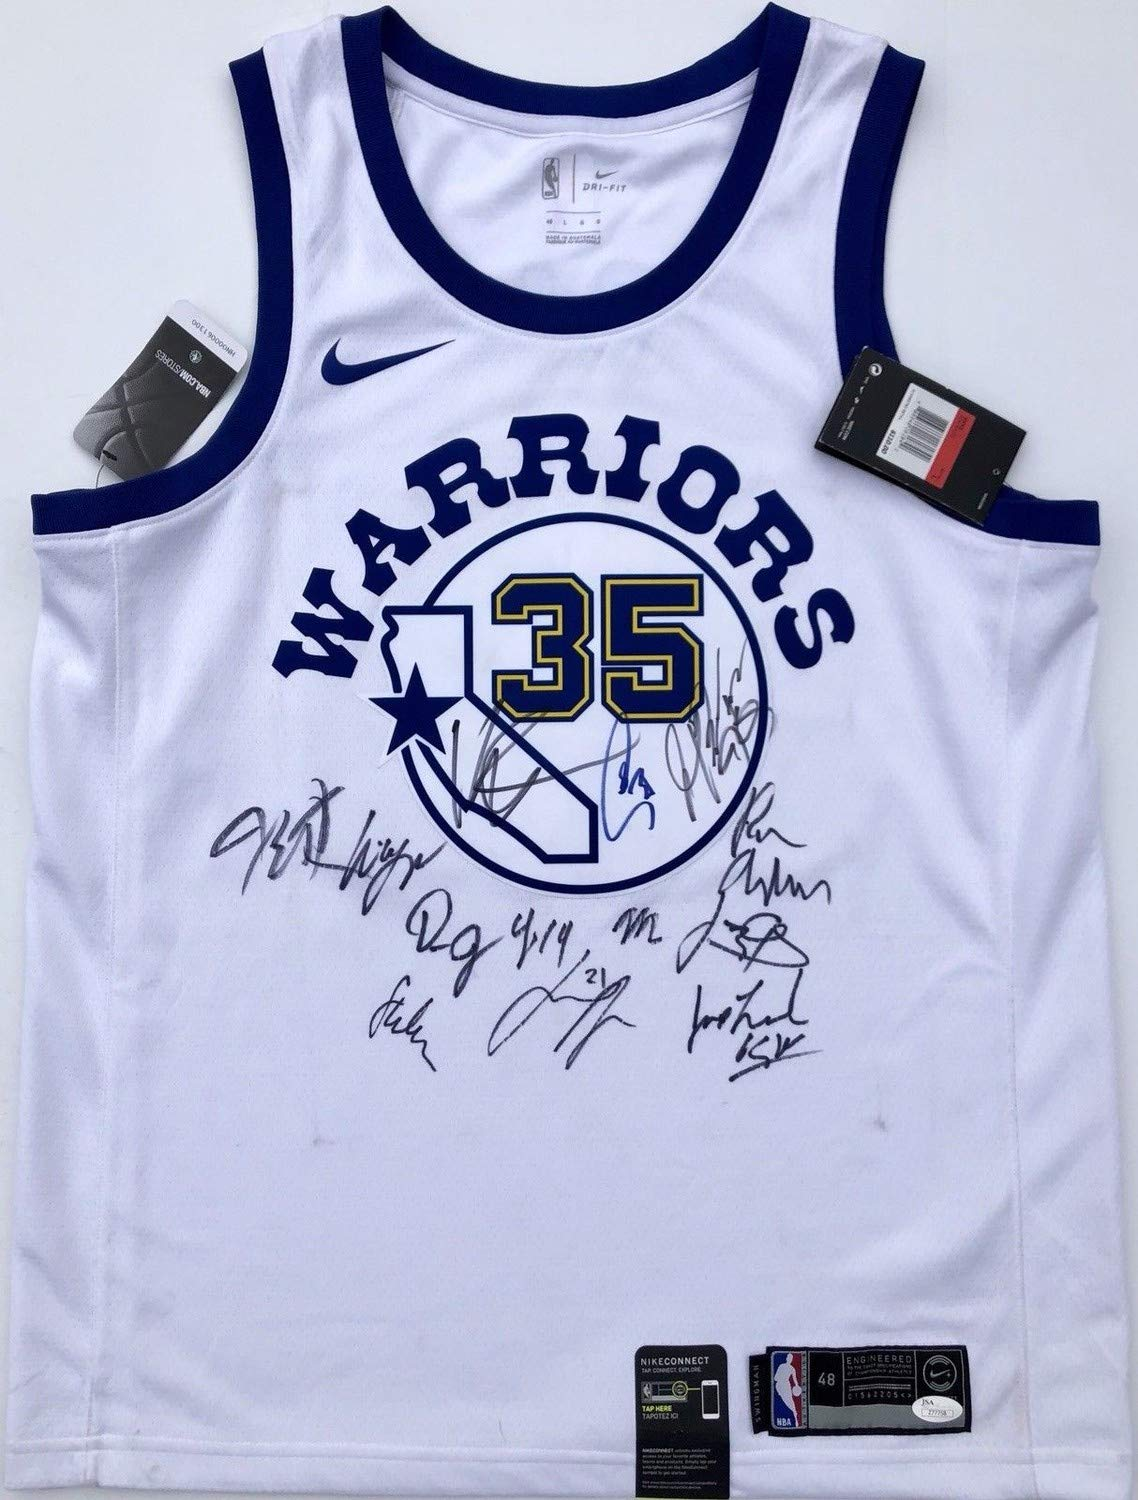 2396b6afcd7c0 2018-19 Golden State Warriors Team Autographed Signed Nike Jersey ...